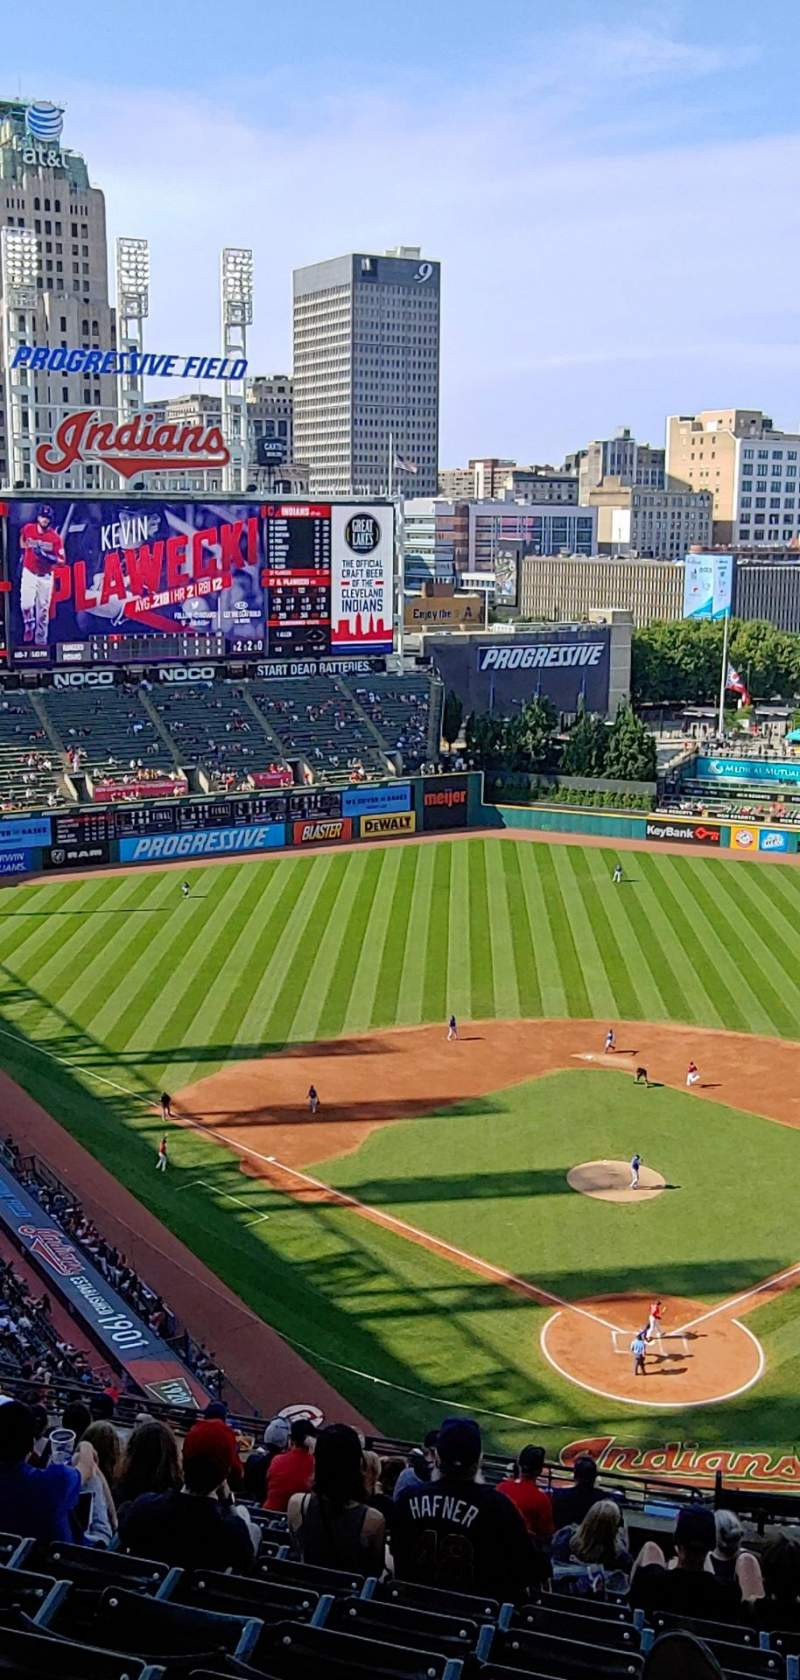 Seating view for Progressive Field Section 555 Row V Seat 5